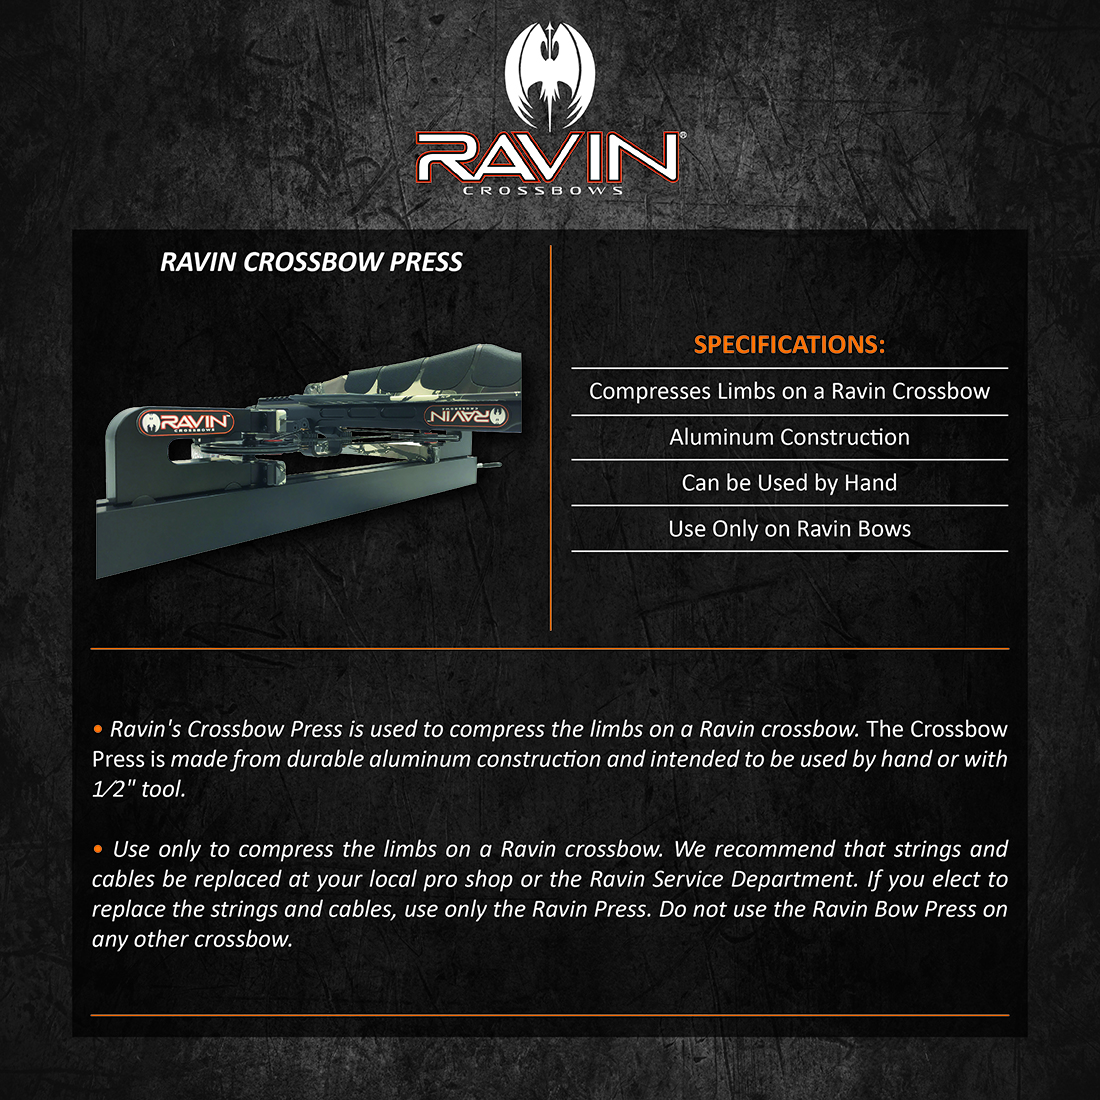 Ravin_Crossbow_Press_Product_Description